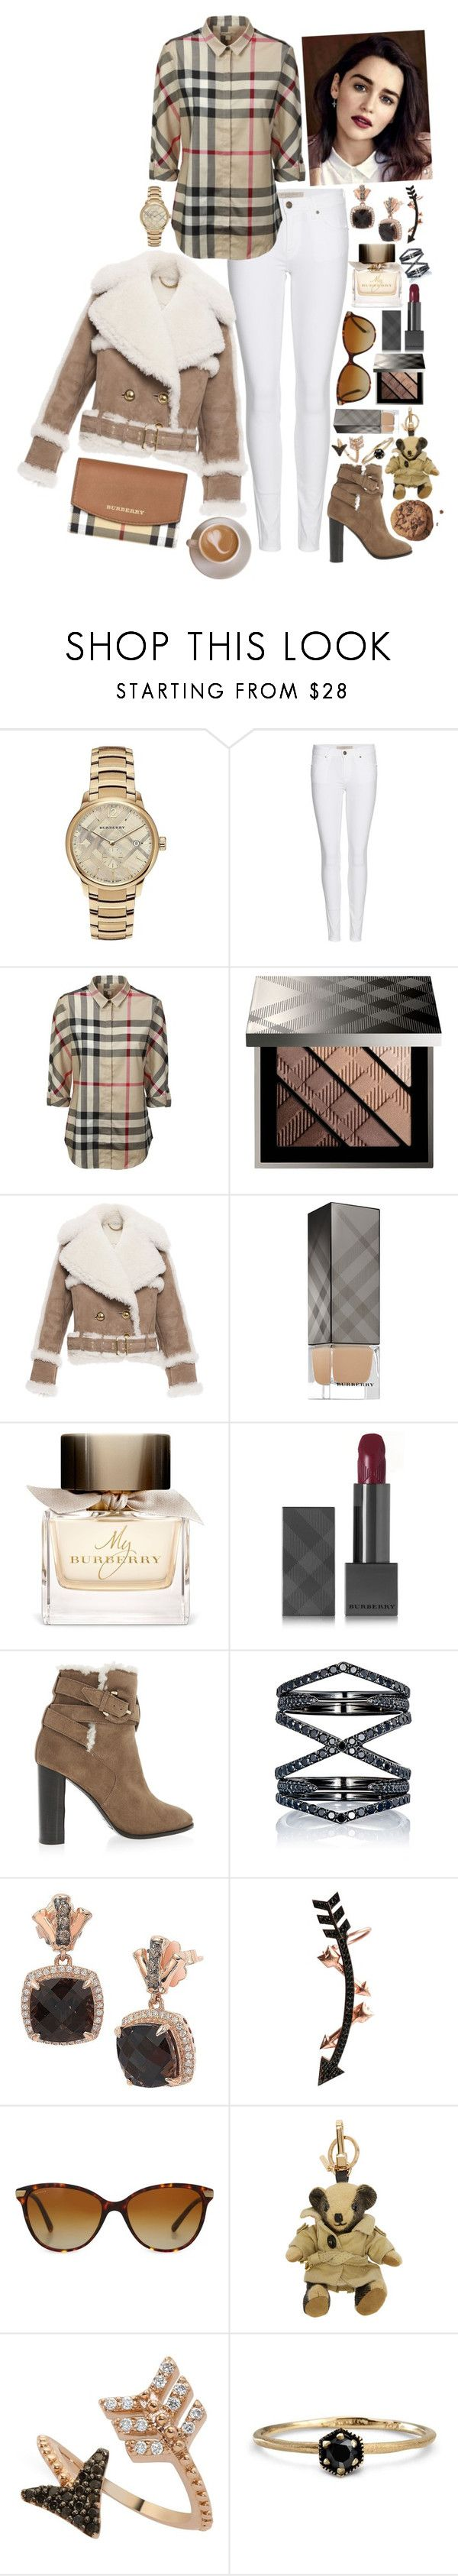 """7 Years - Cover by Jasmine Thompson"" by leo8august ❤ liked on Polyvore featuring Burberry, Eva Fehren, LE VIAN, Wild Hearts, Bee Goddess and Satomi Kawakita"